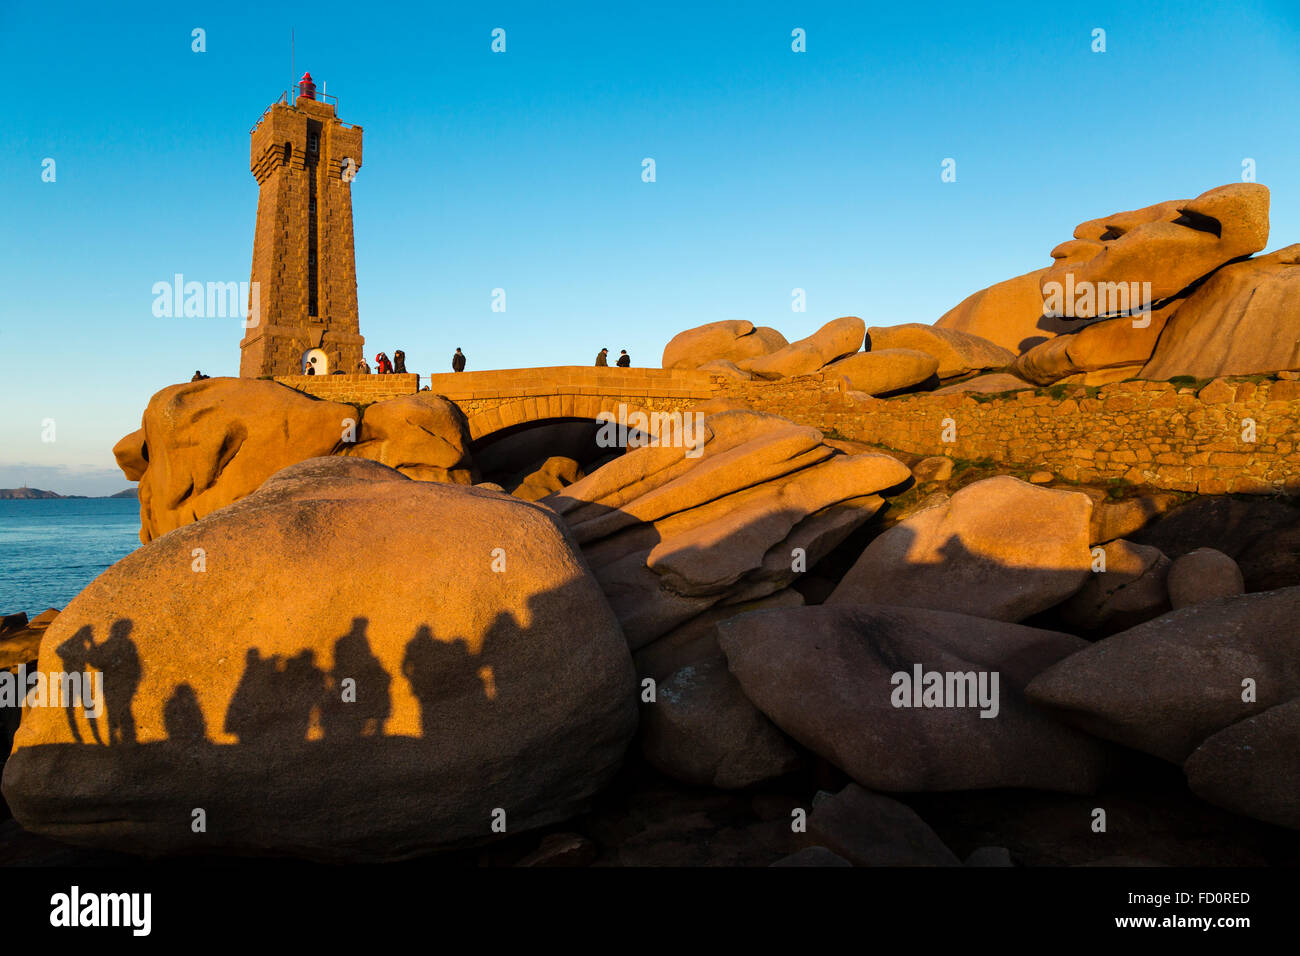 France,Brittany,Cotes d'Armor, the Men Ruz  lighthouse  at Ploumanach, commune of Perros Guirec - Stock Image